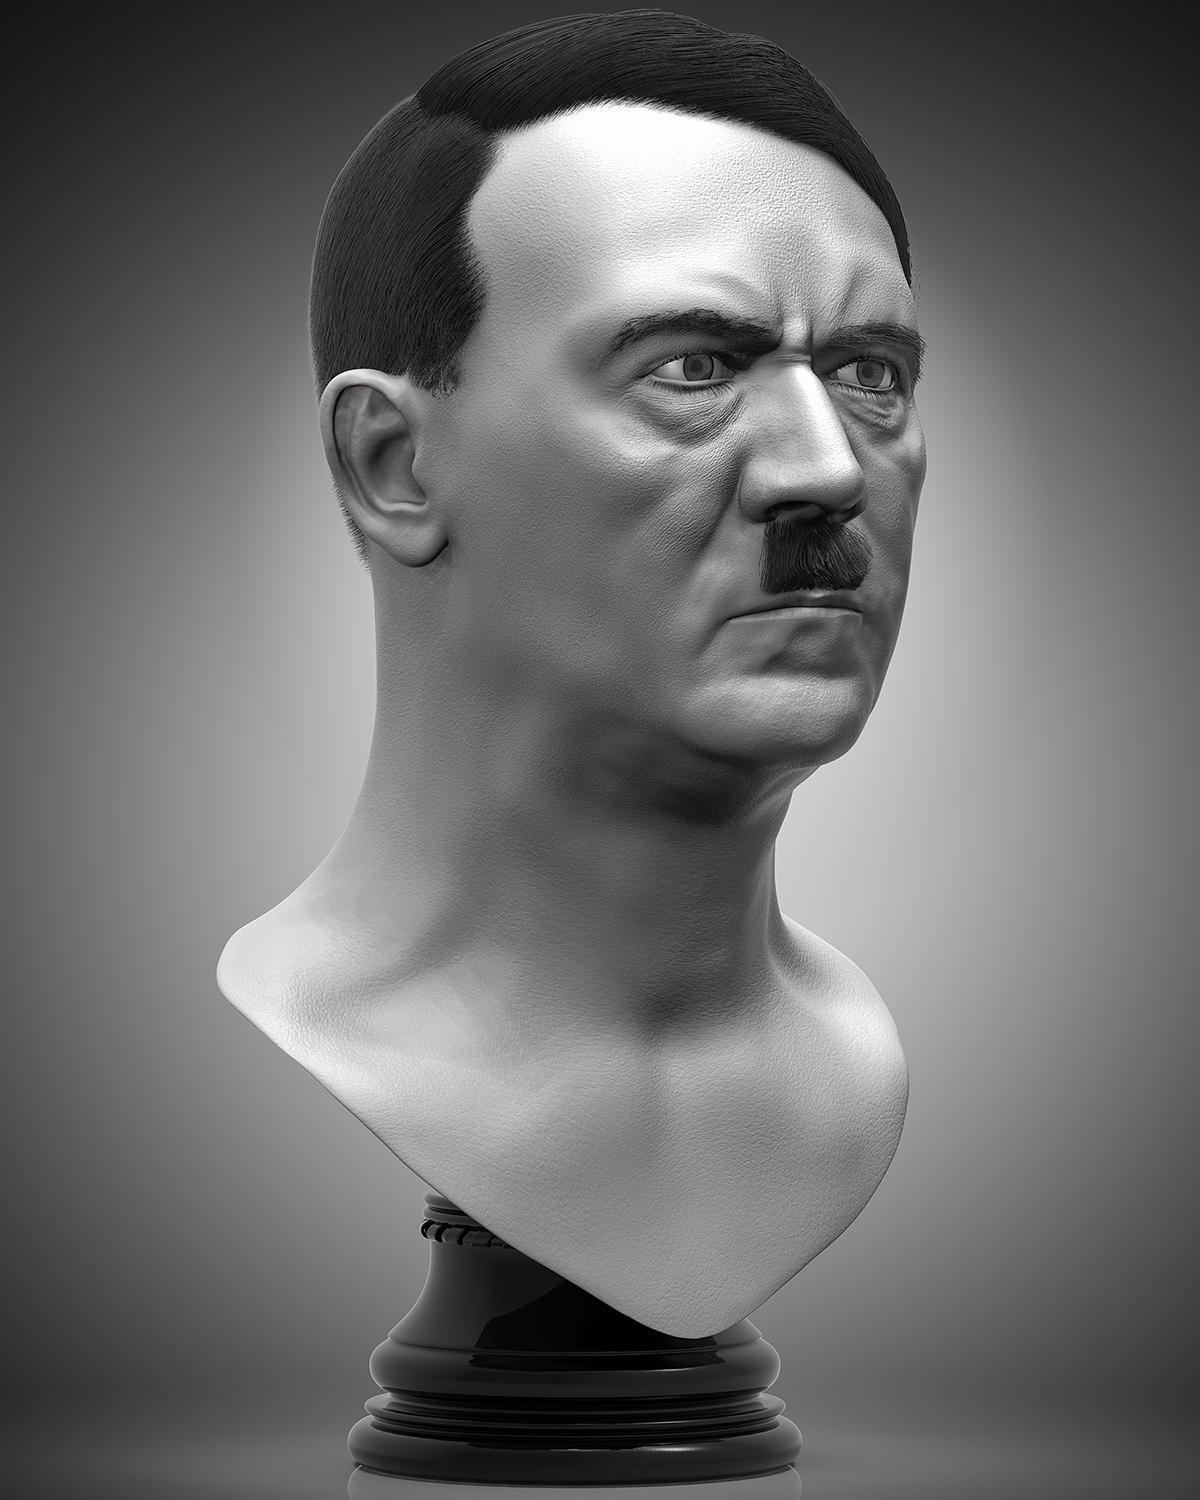 Bust of Adolf Hitler-Created by Esfandiyar Ebadi- Any kind of changes or misuse by any group or .jpg